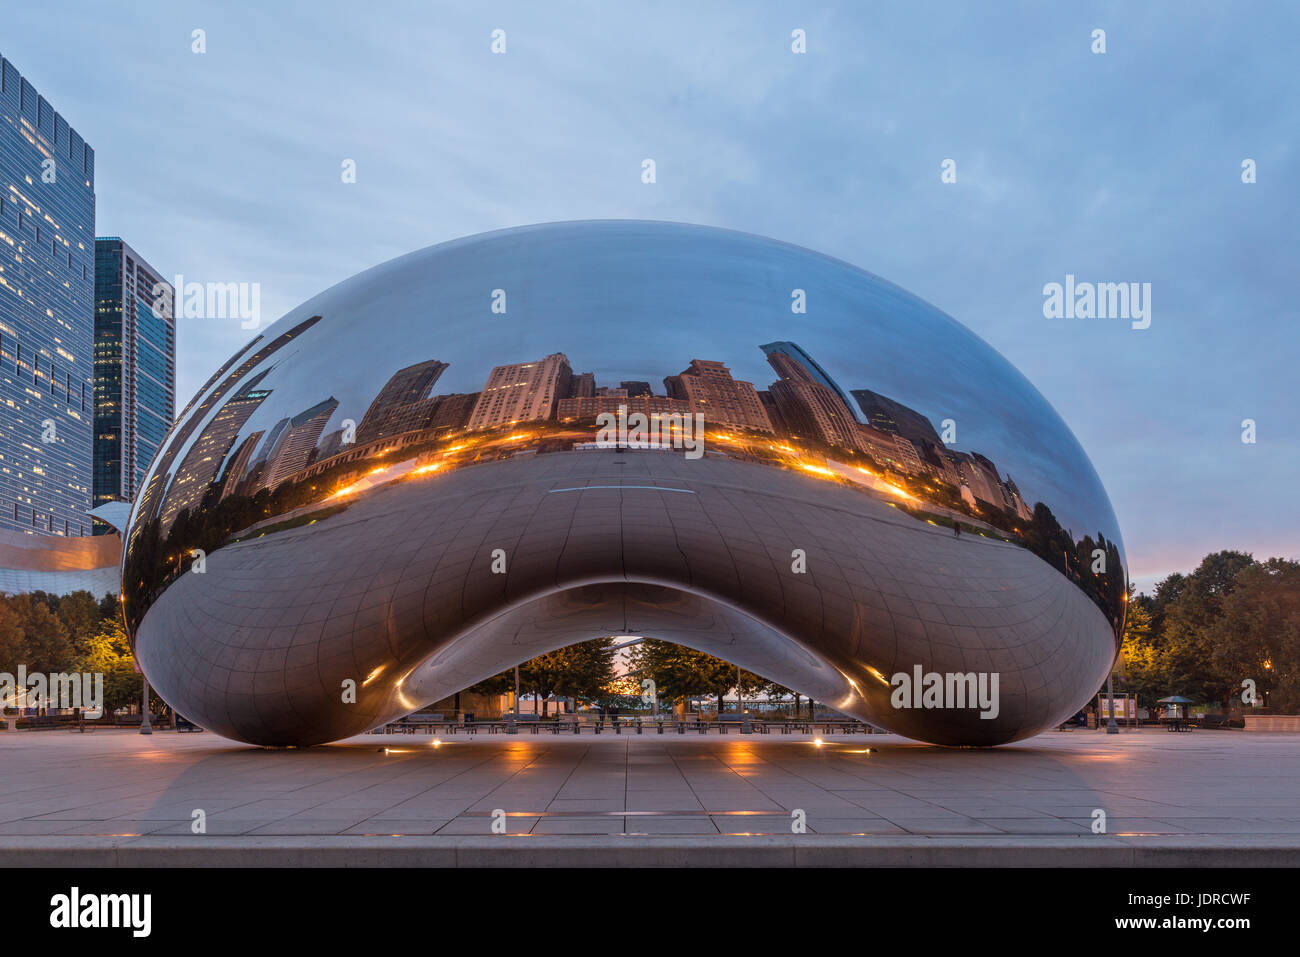 Dawn picture at Millennium Park, Chicago, showing a dark blue  sky , THE BEAN and reflections of skyscrapers. - Stock Image